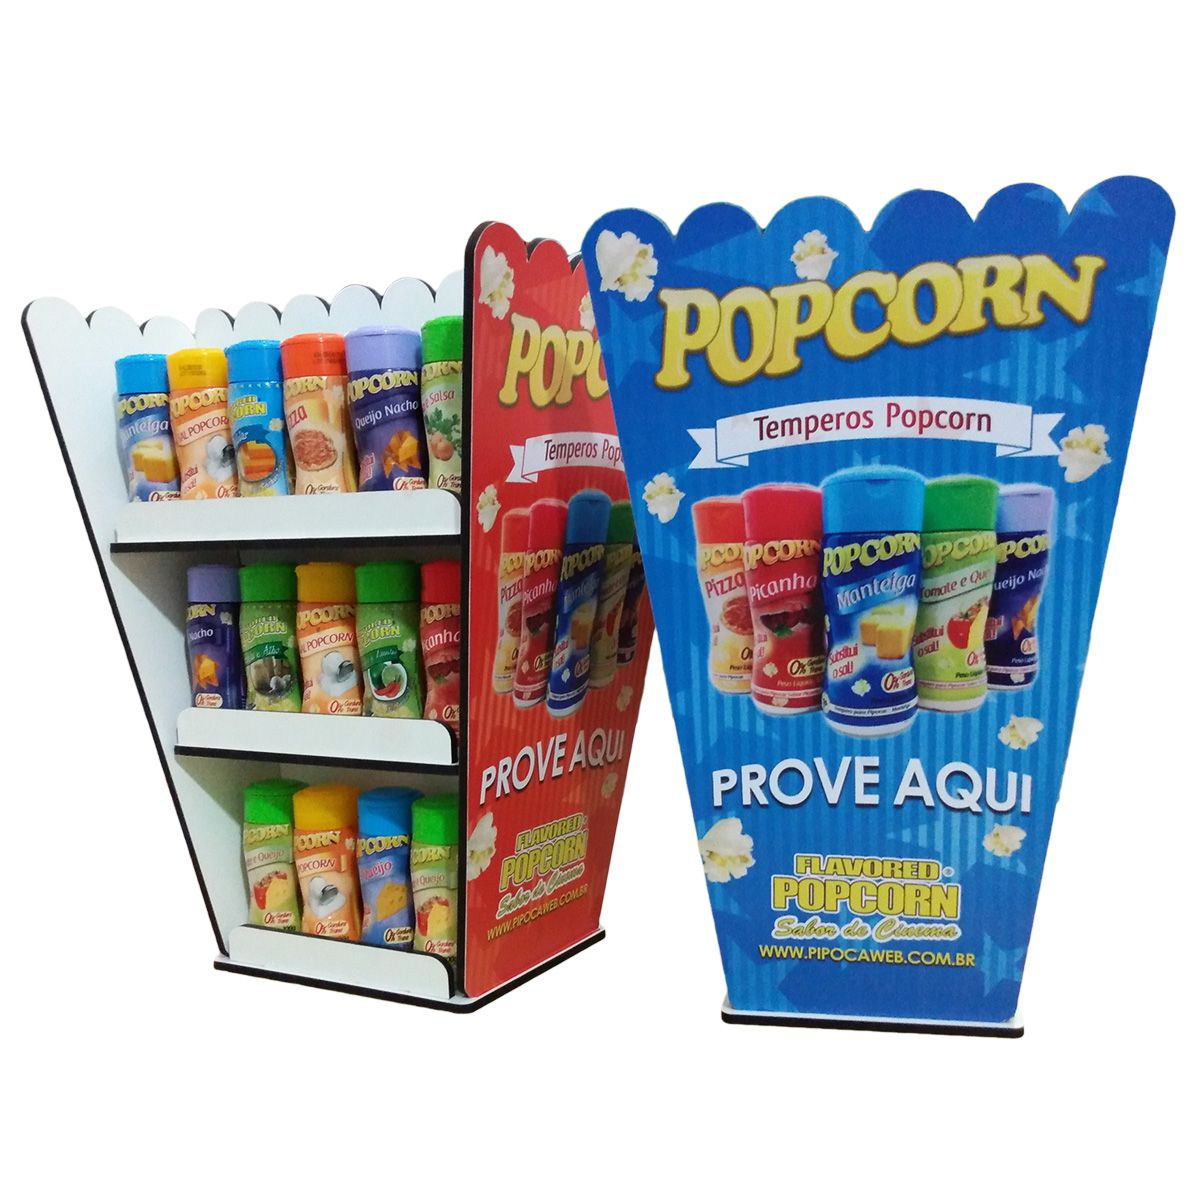 Expositor de temperos caixa Popcorn - Display  - 22 frascos - 02 frentes